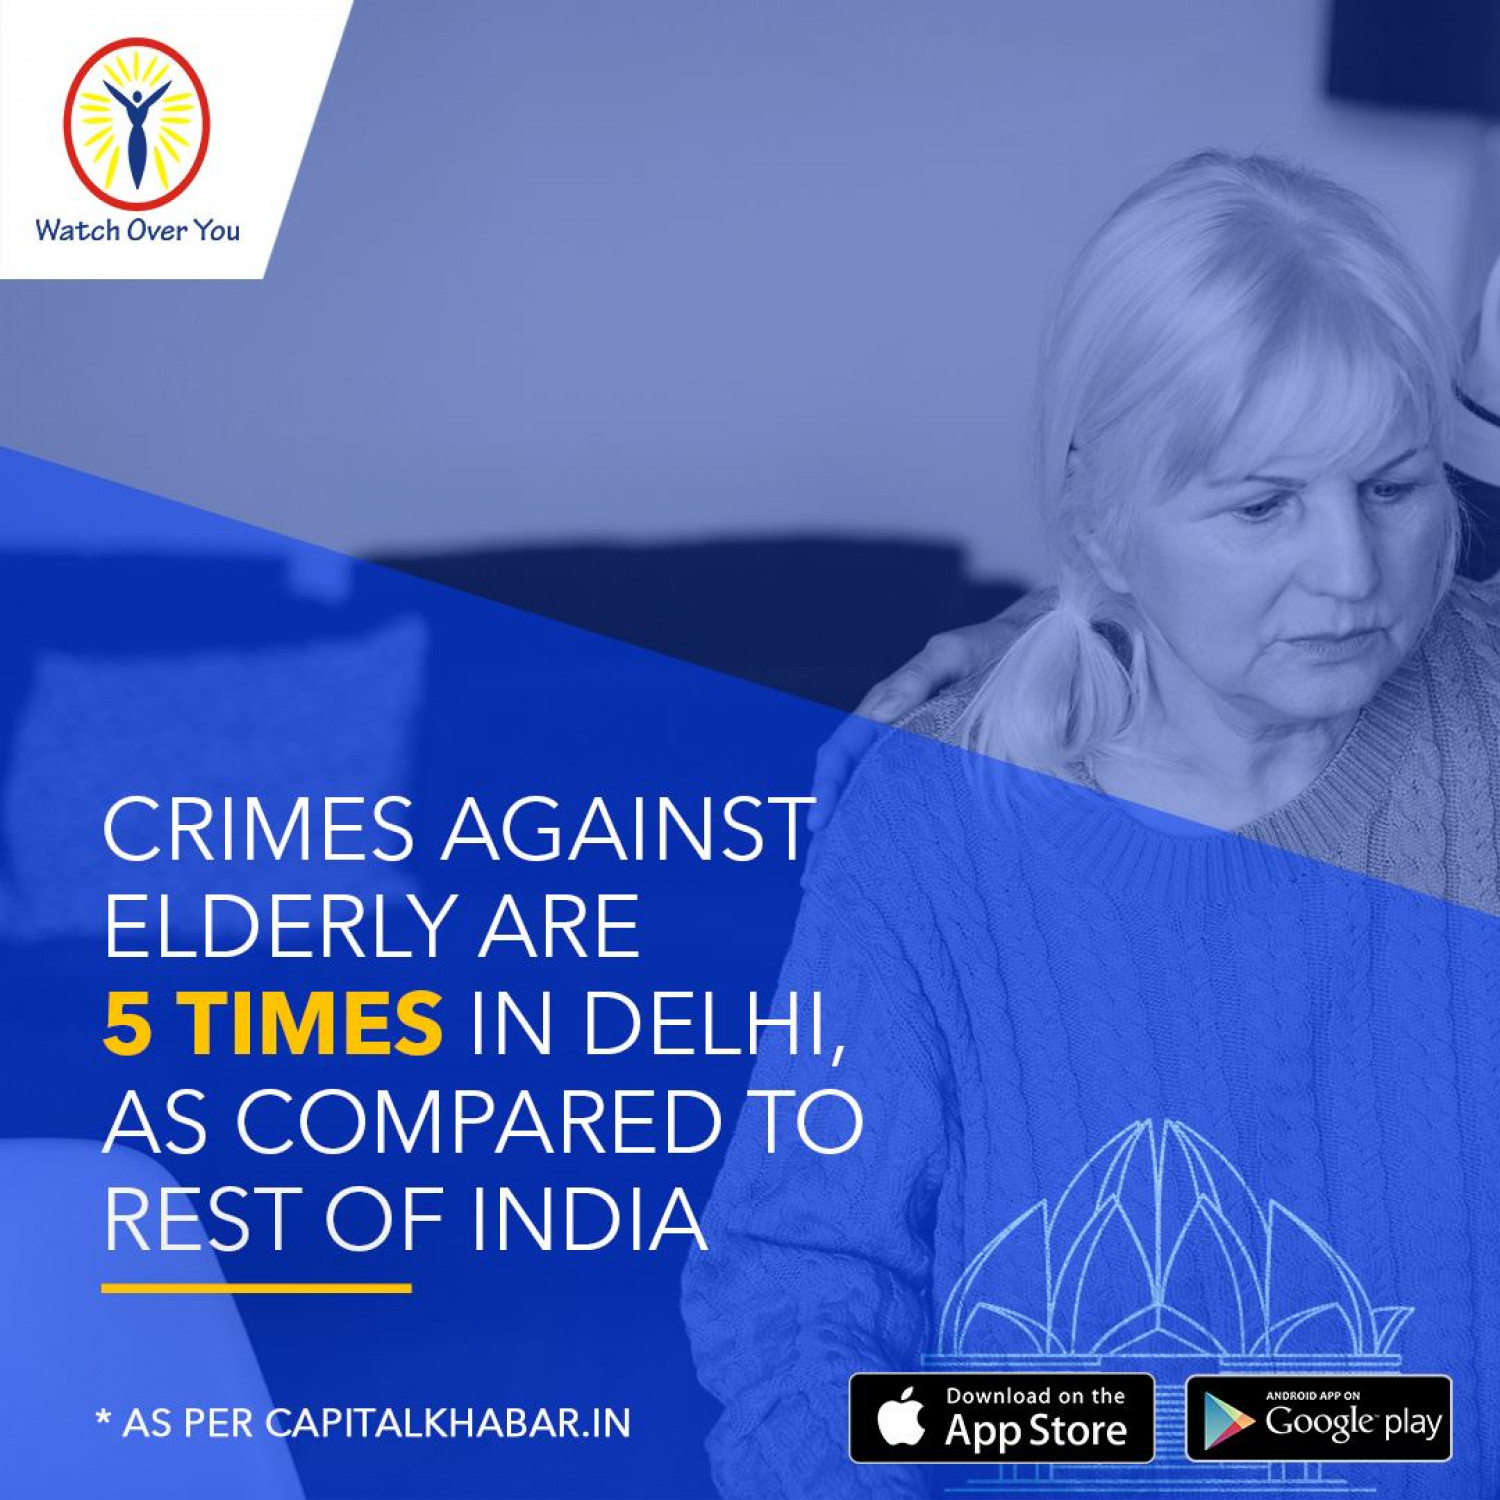 Watch Over You - Senior Citizen App in India Infographic